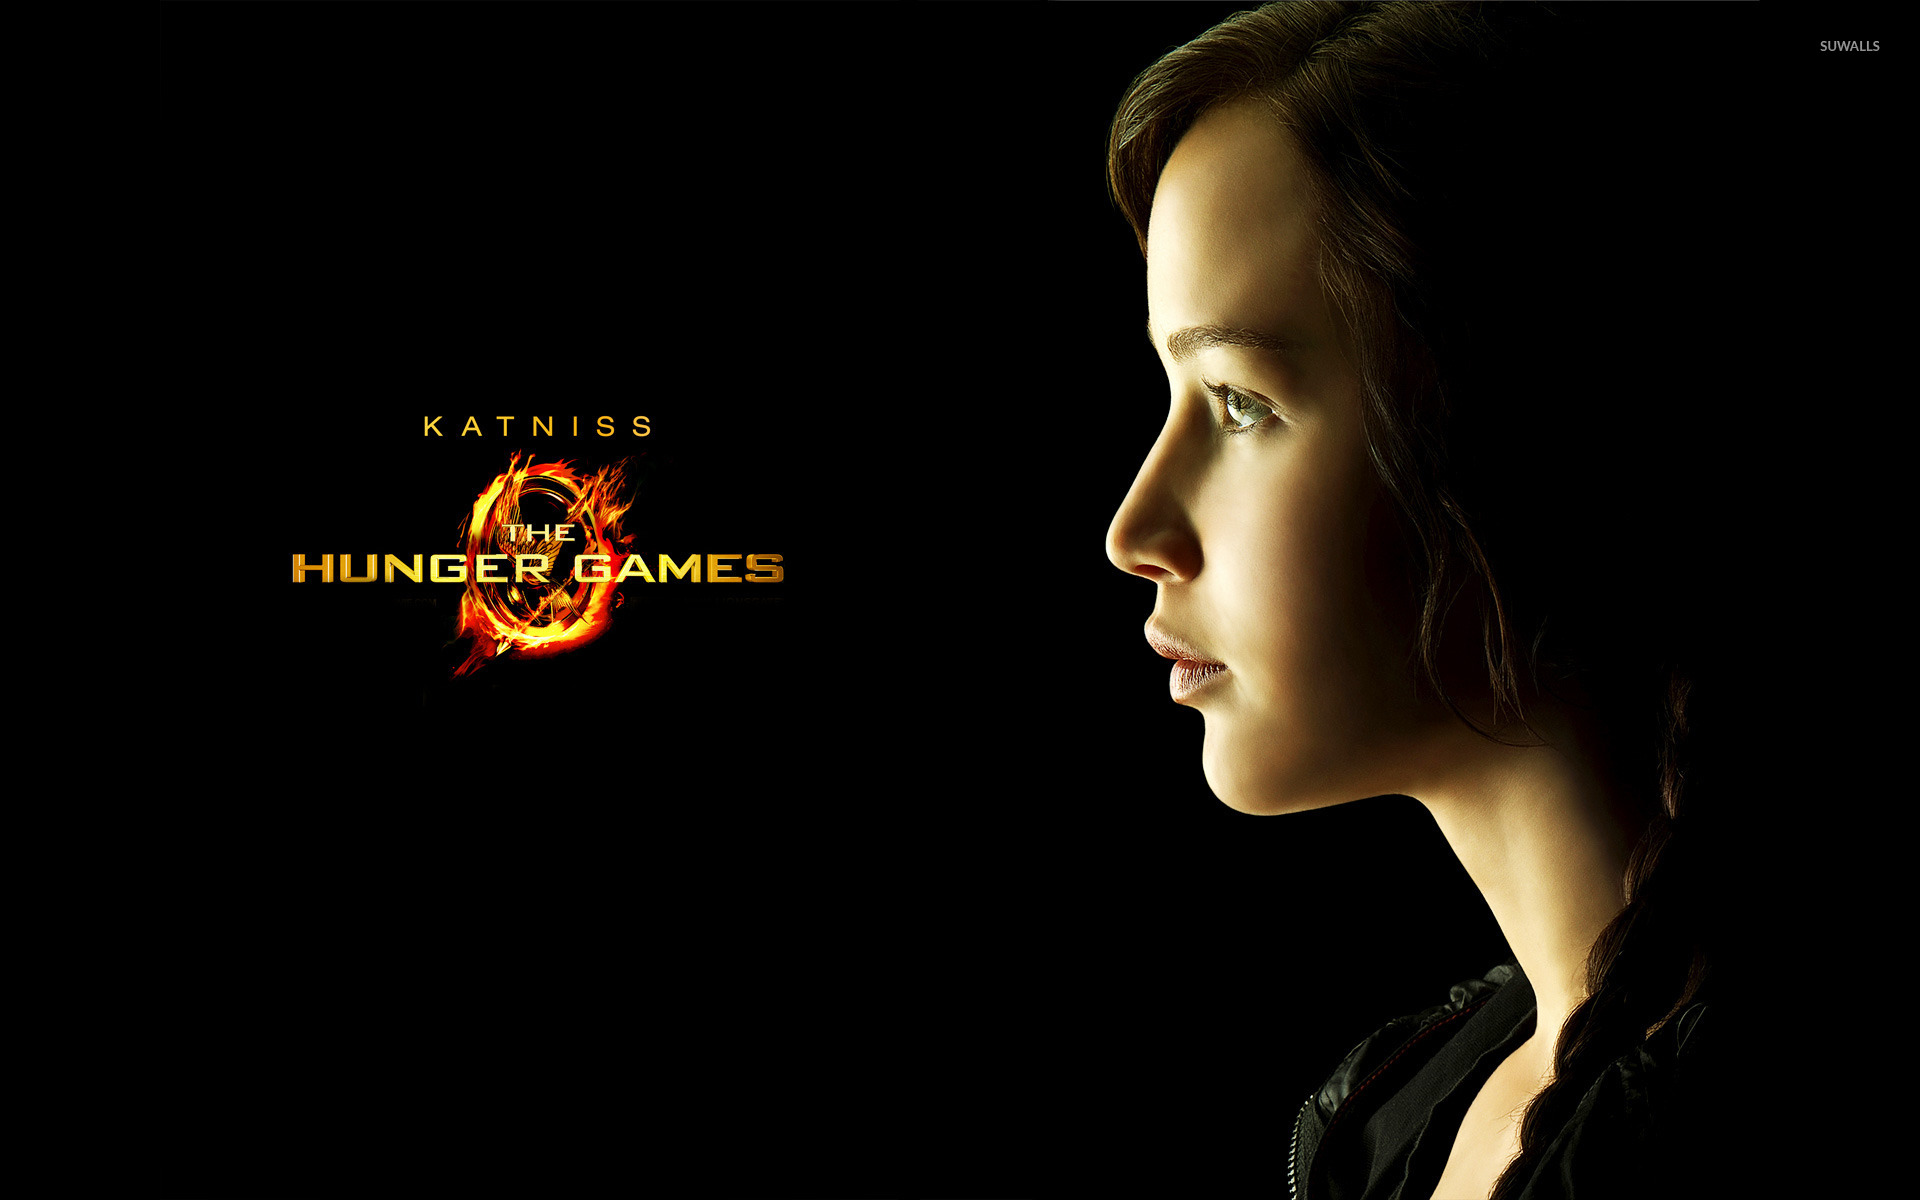 hunger games movie wallpapers - photo #24